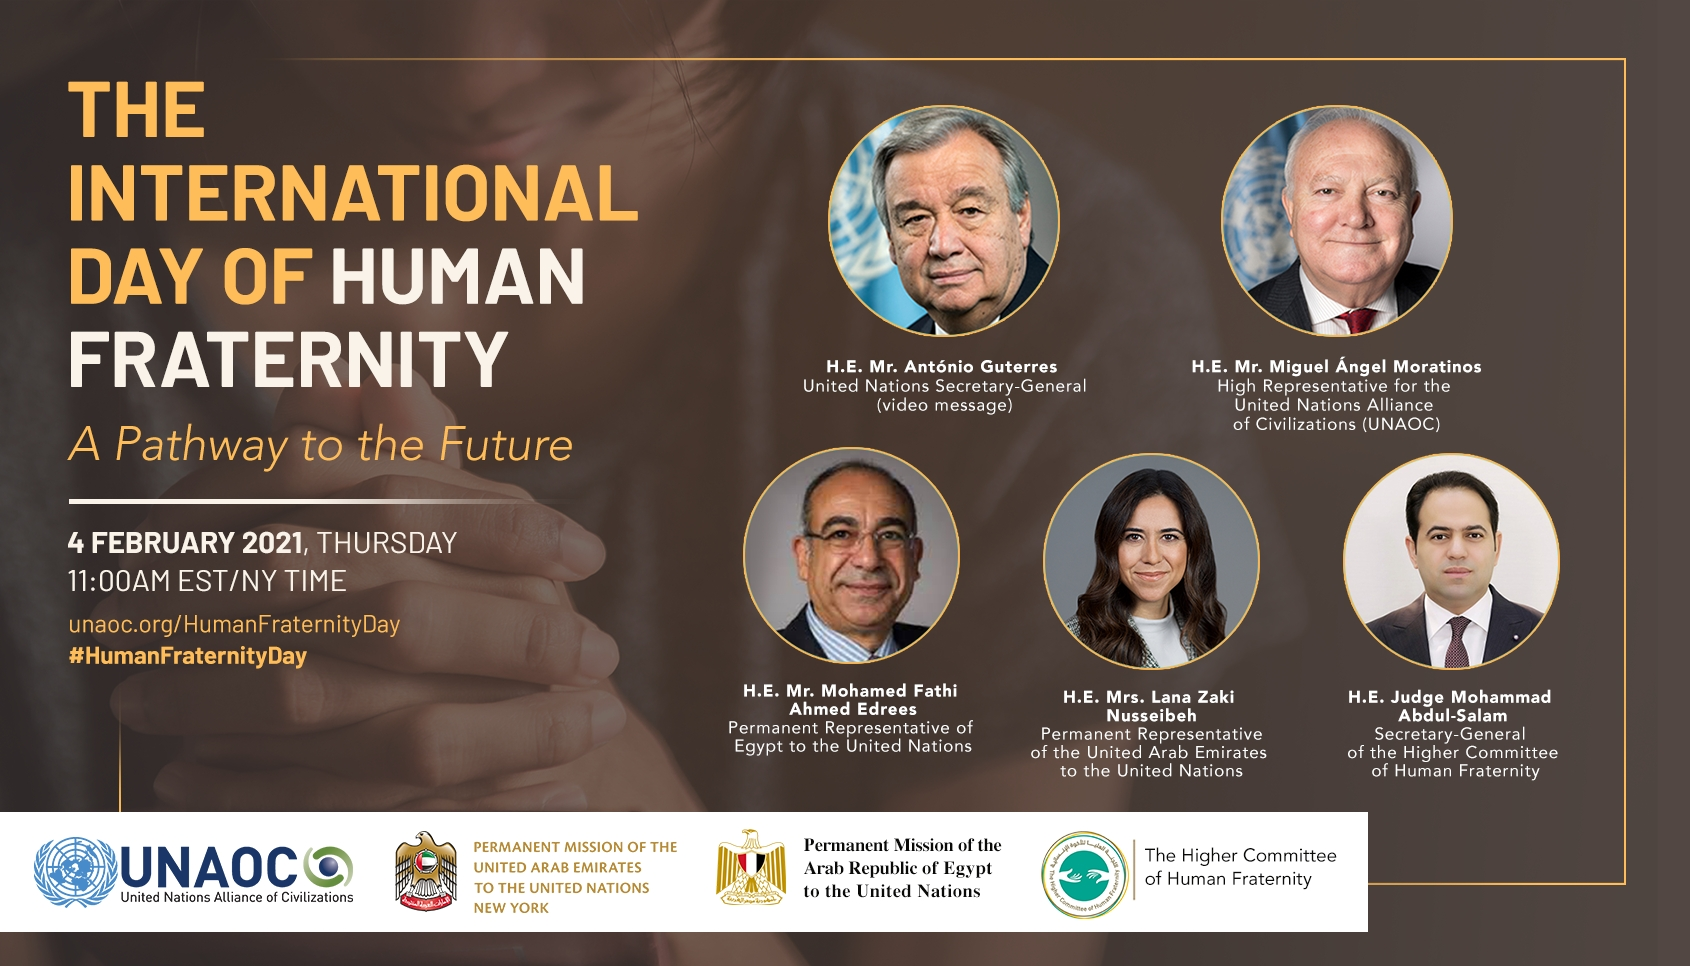 The International Day of Human Fraternity: A Pathway to the Future